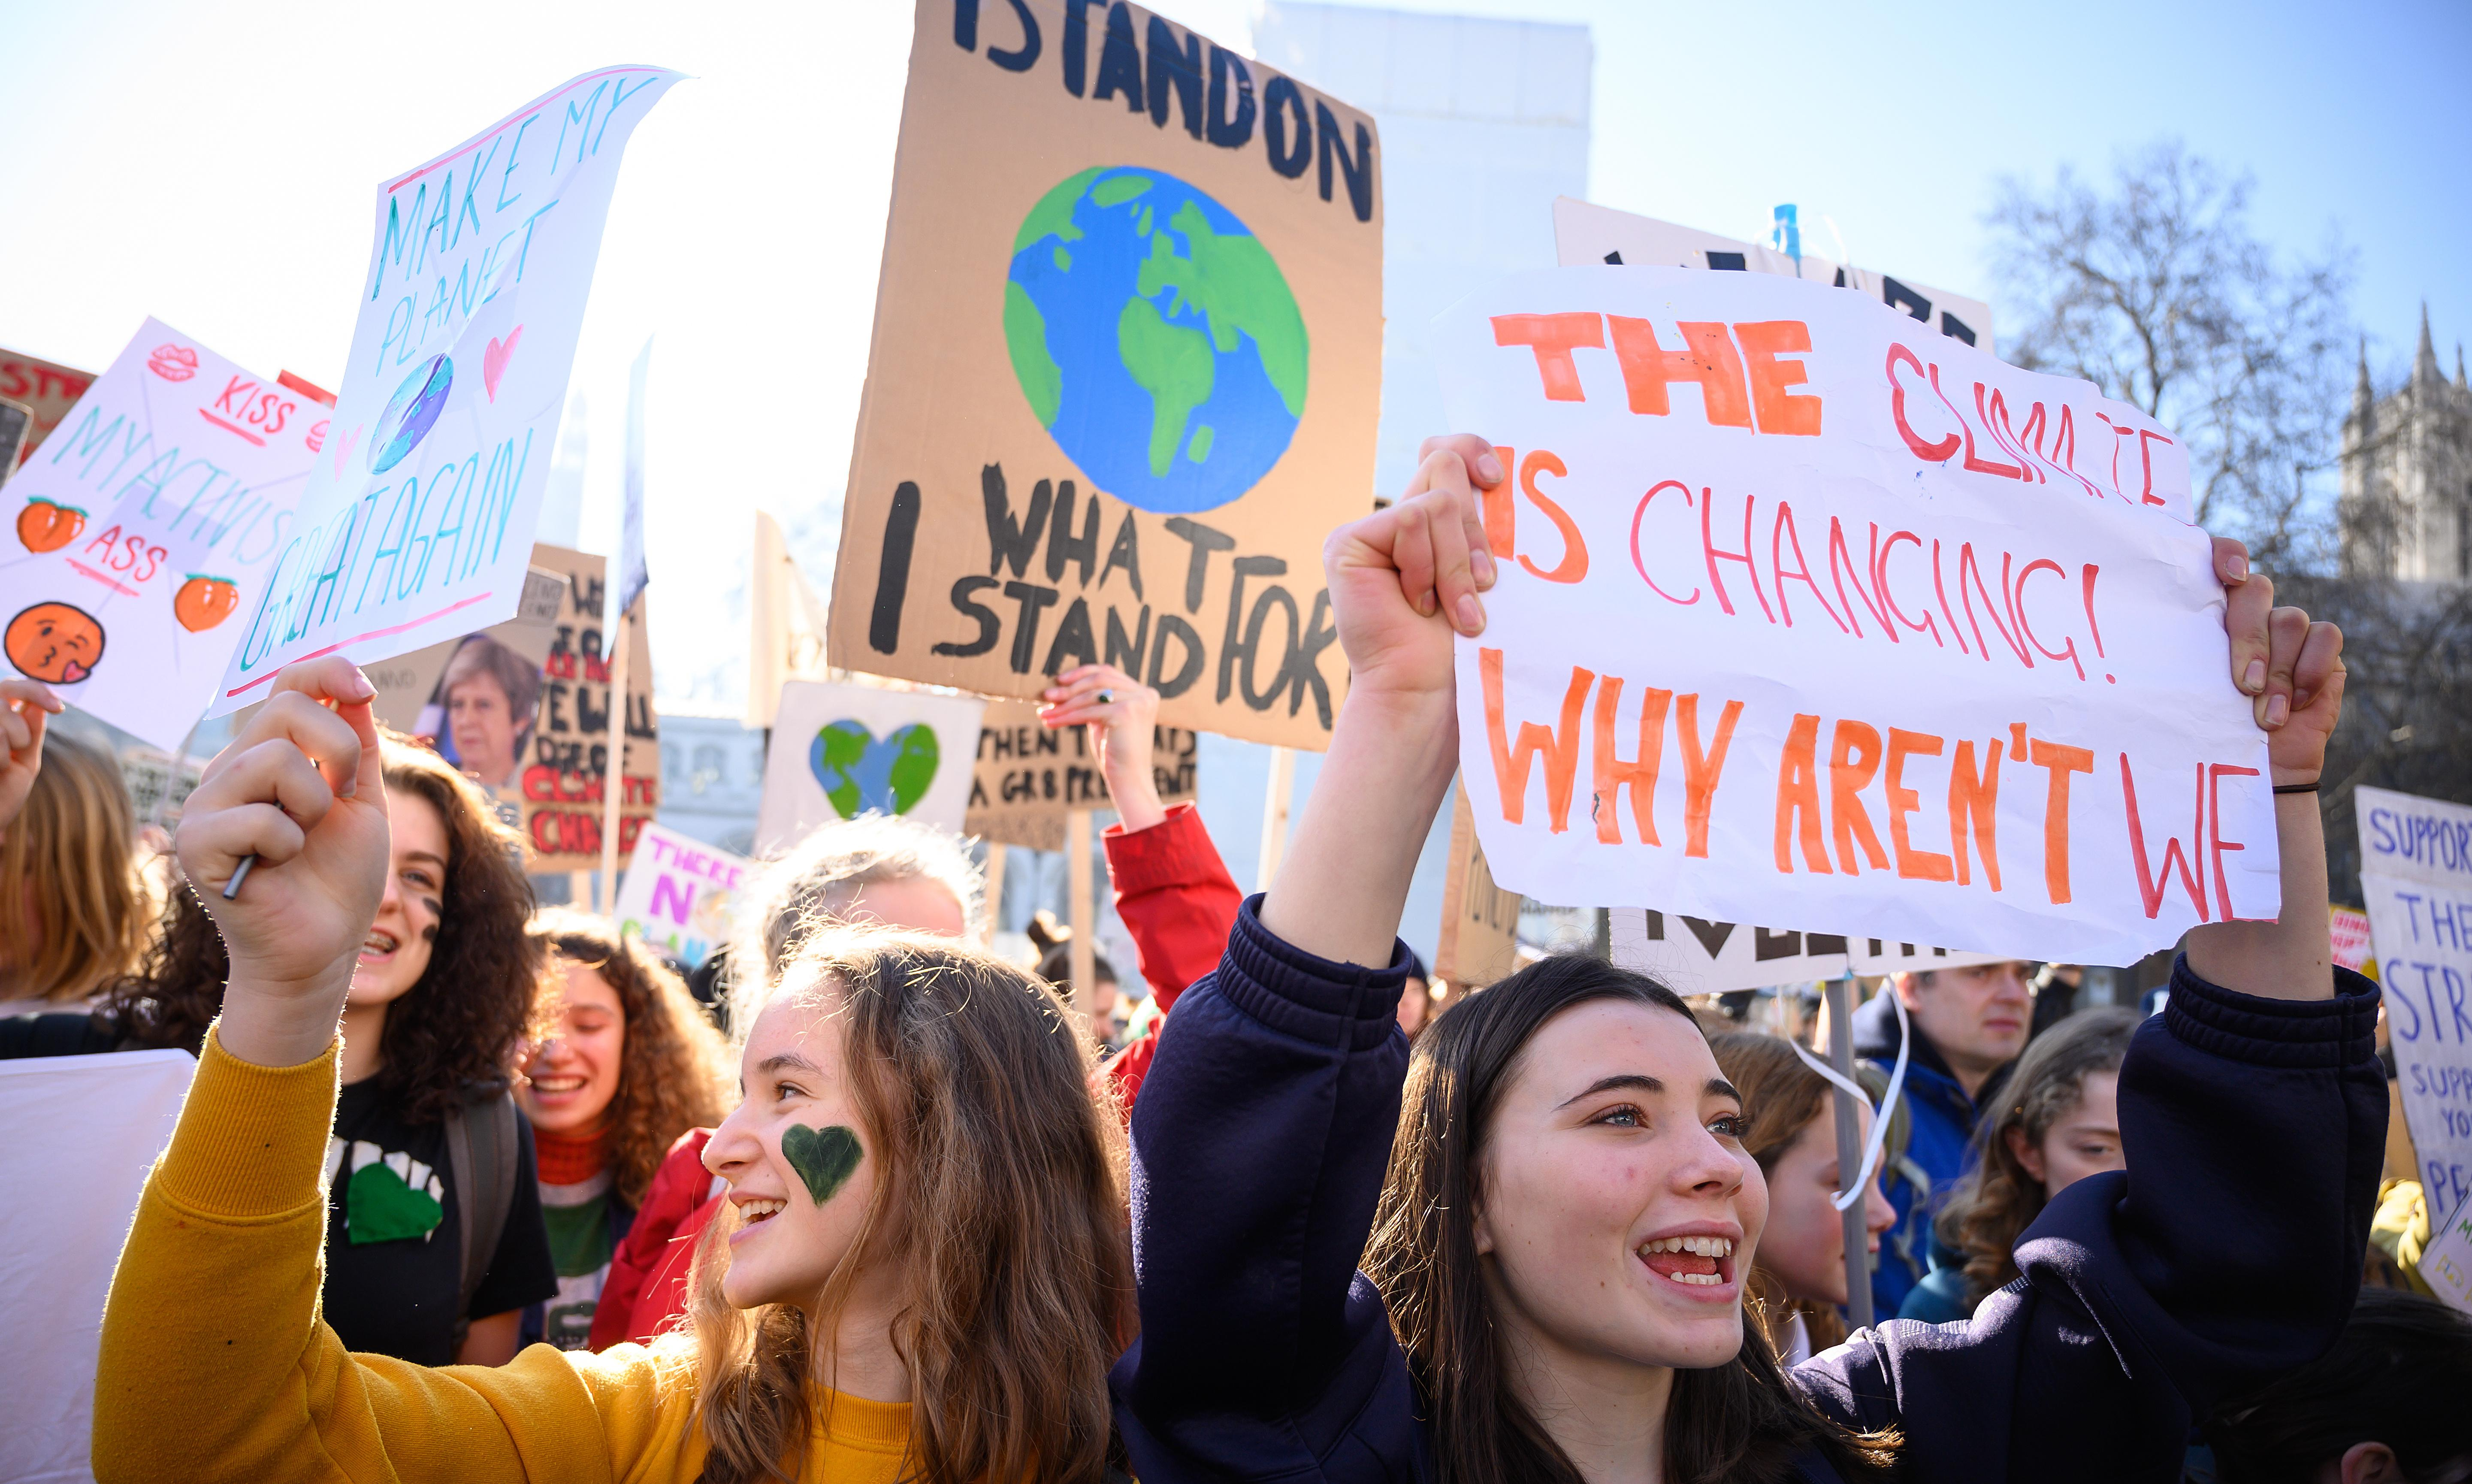 Climate crisis seen as 'most important issue' by public, poll shows